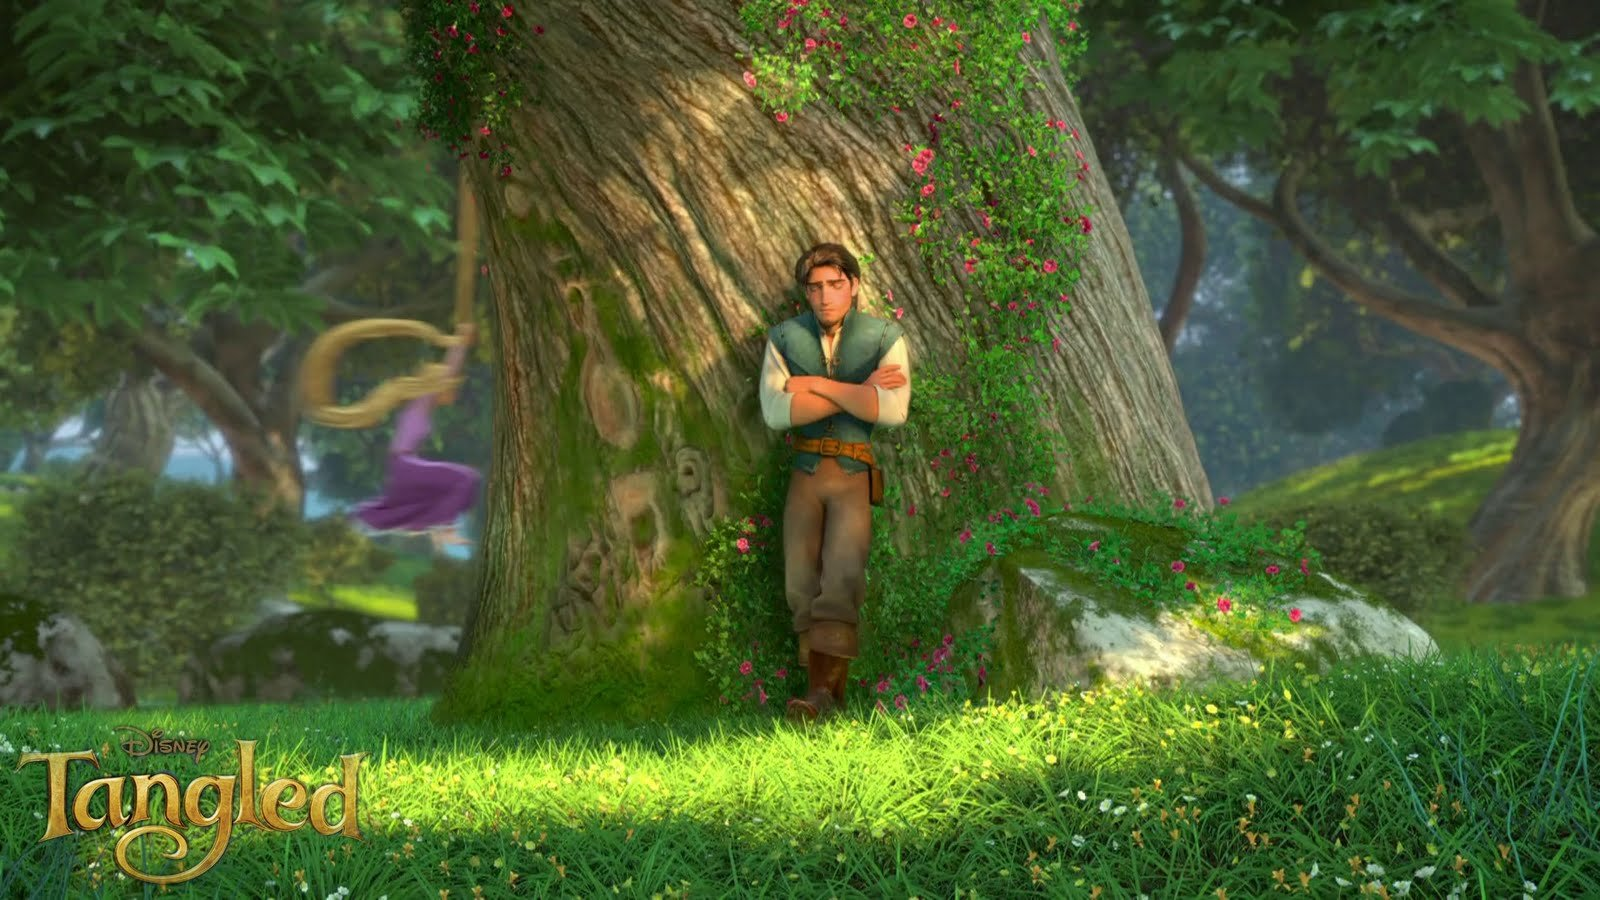 Disney Tangled wallpaper.jpg